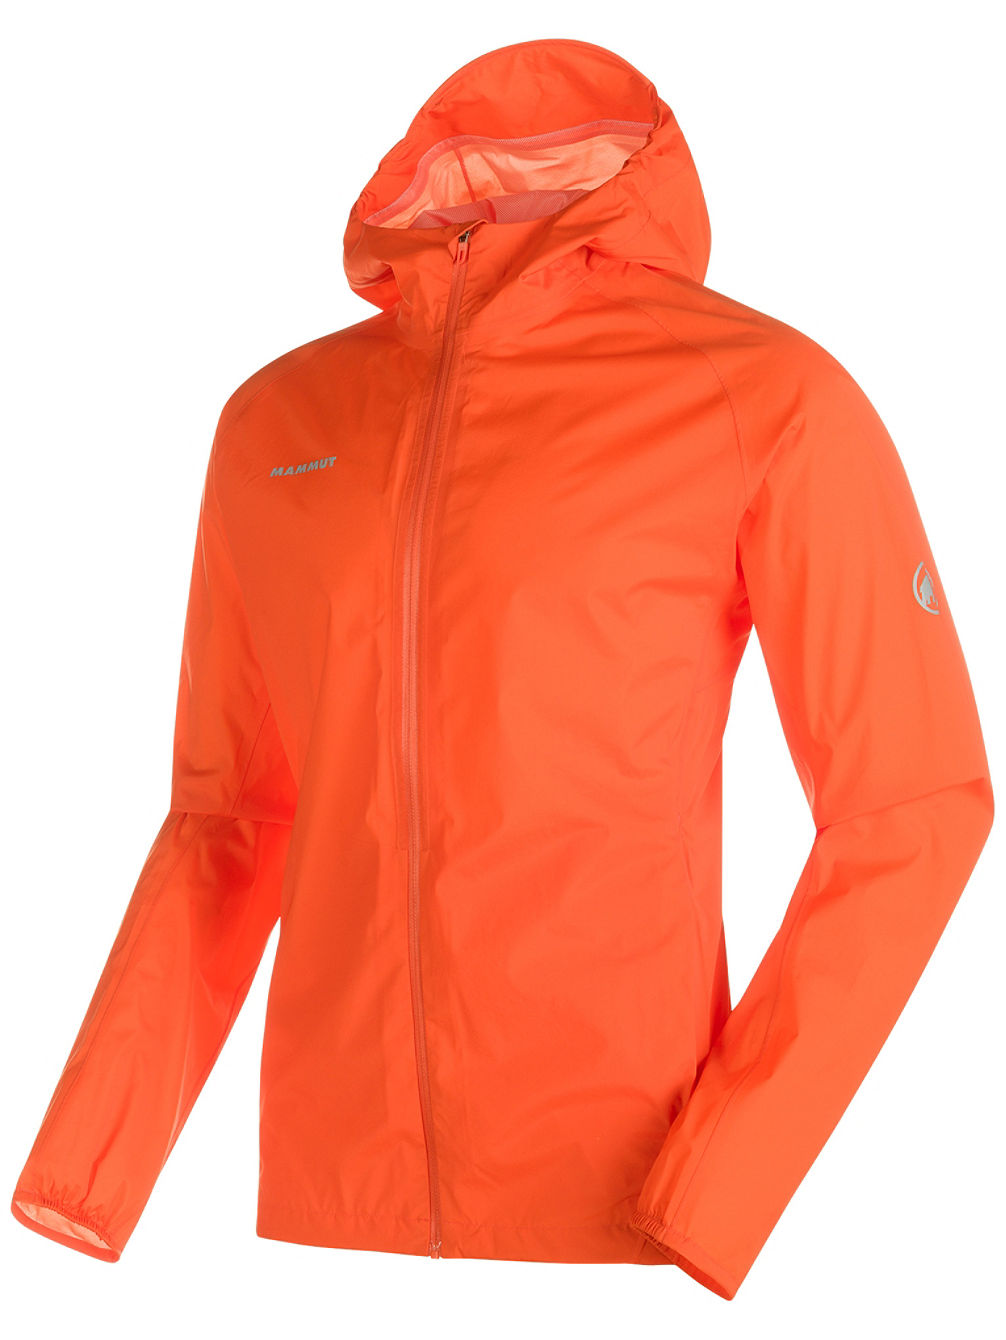 Rainspeed Outdoorjacke